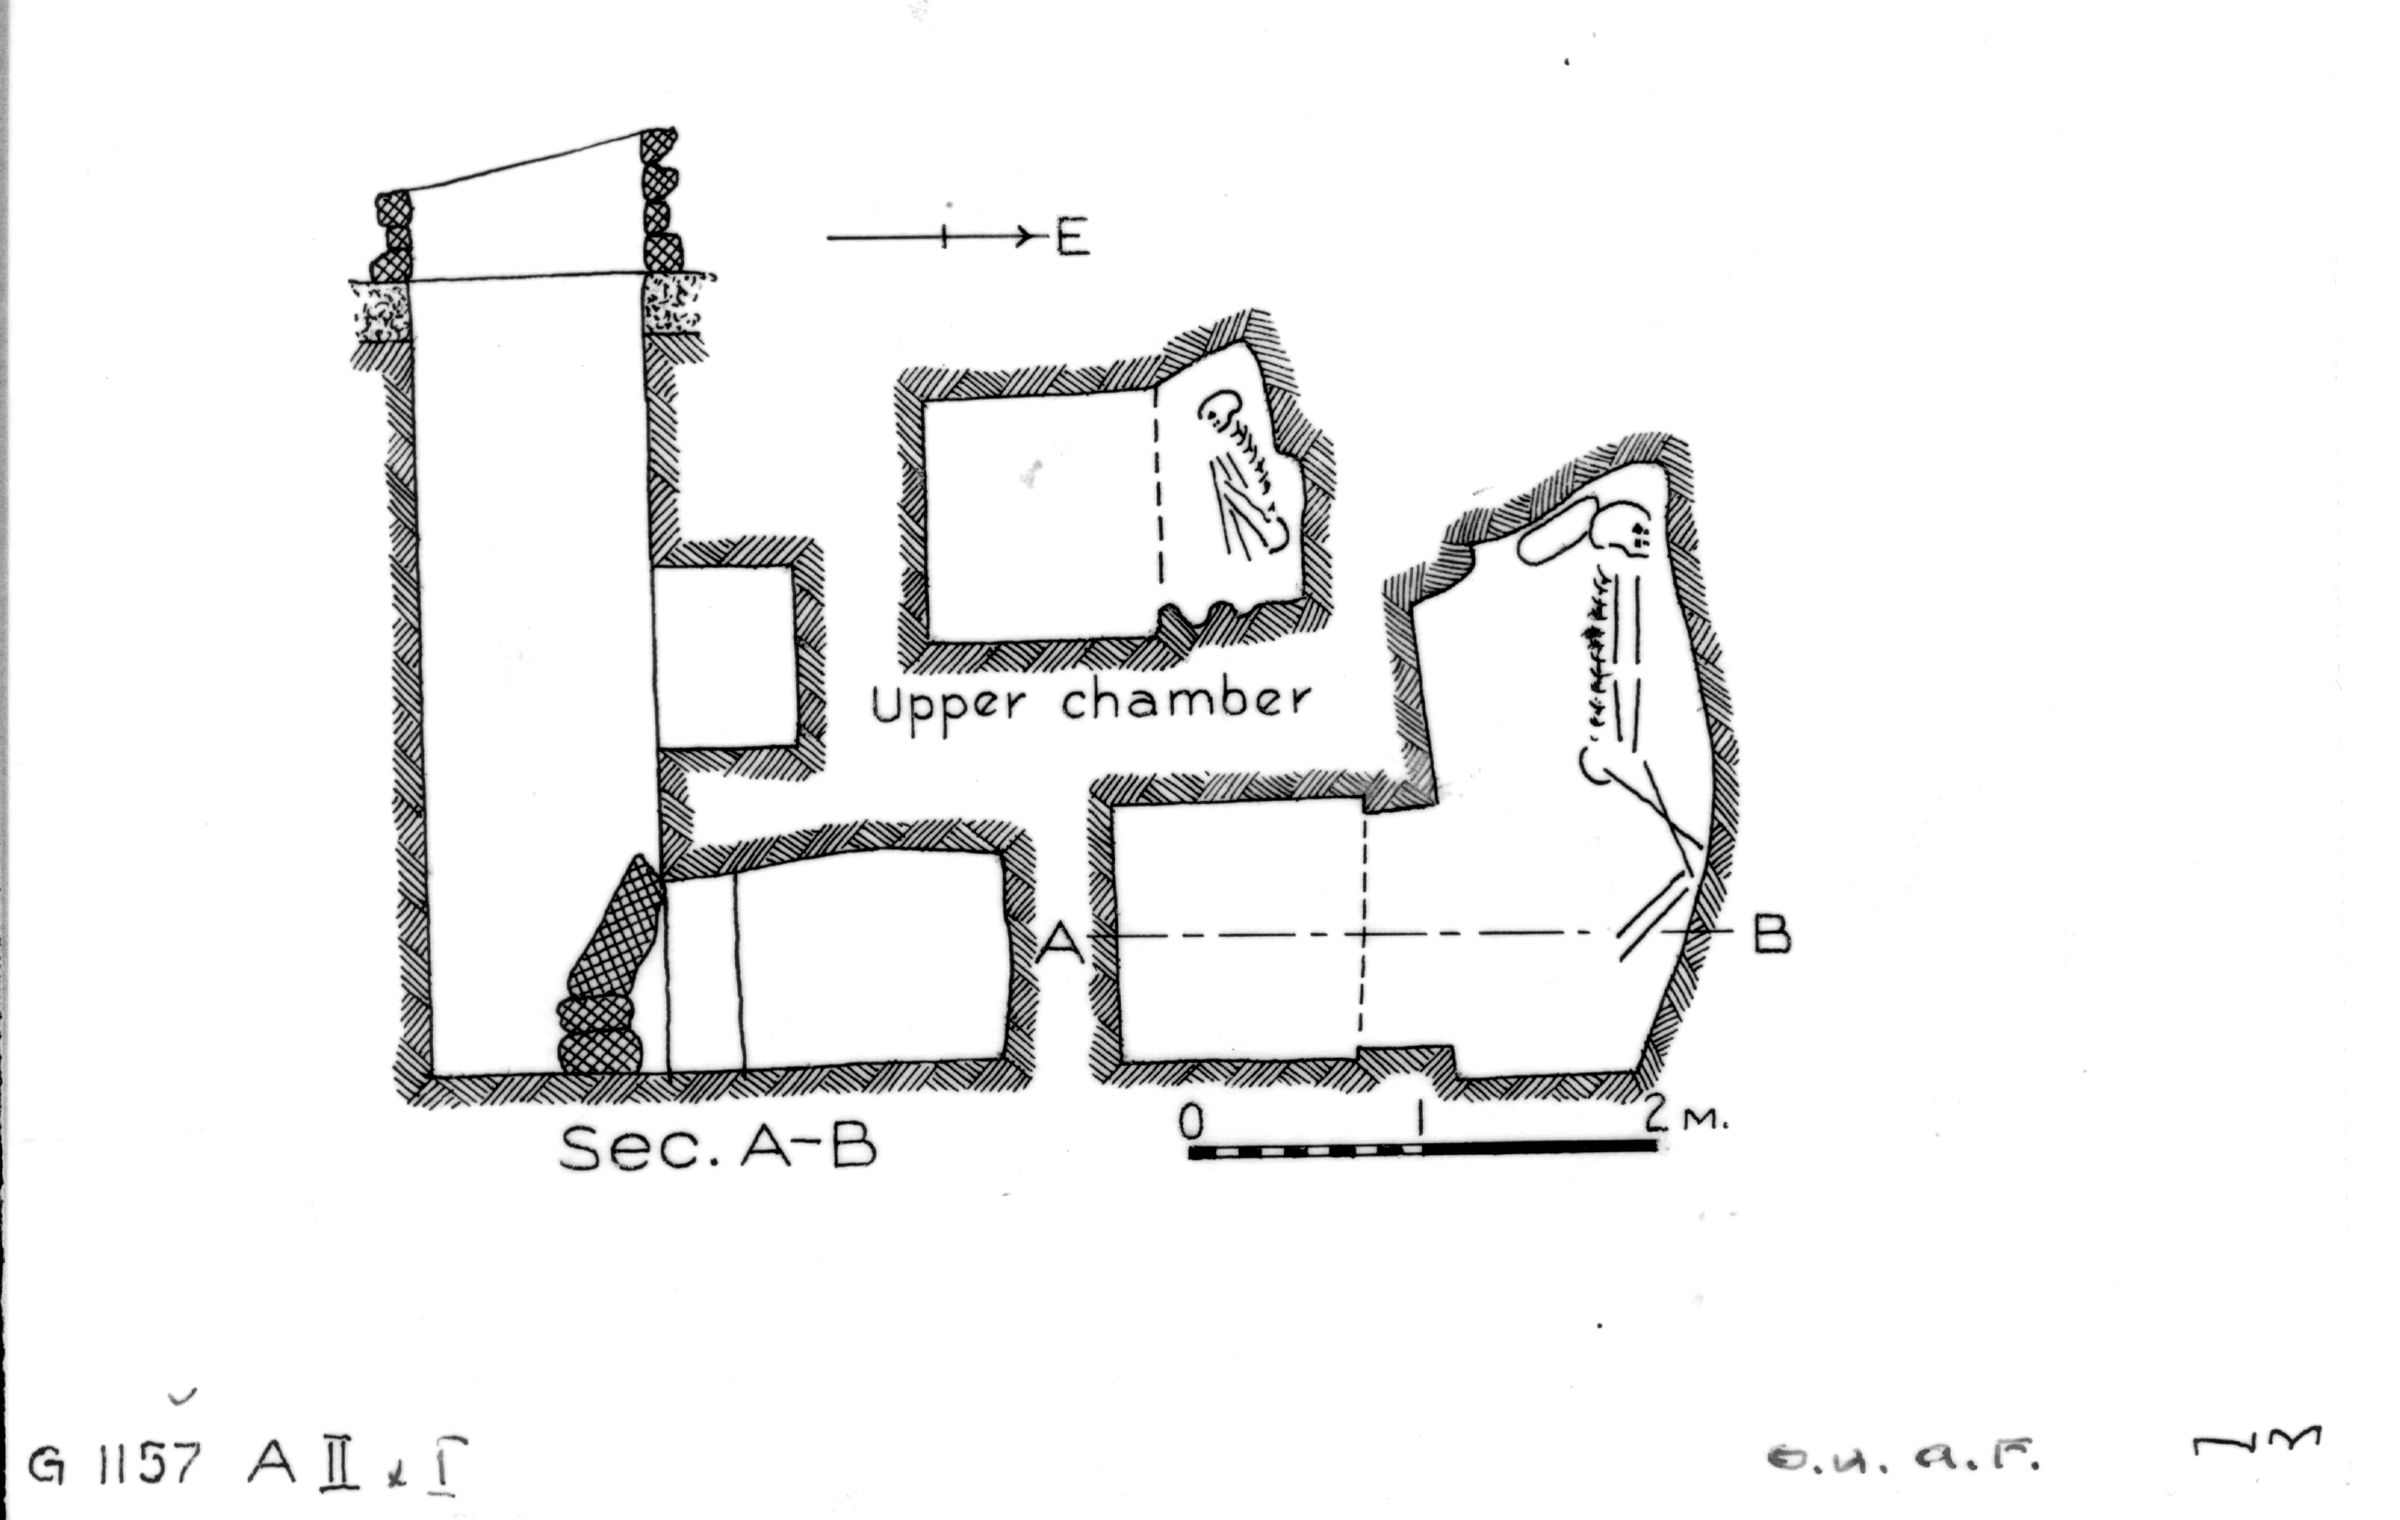 Maps and plans: G 1157, Shaft A